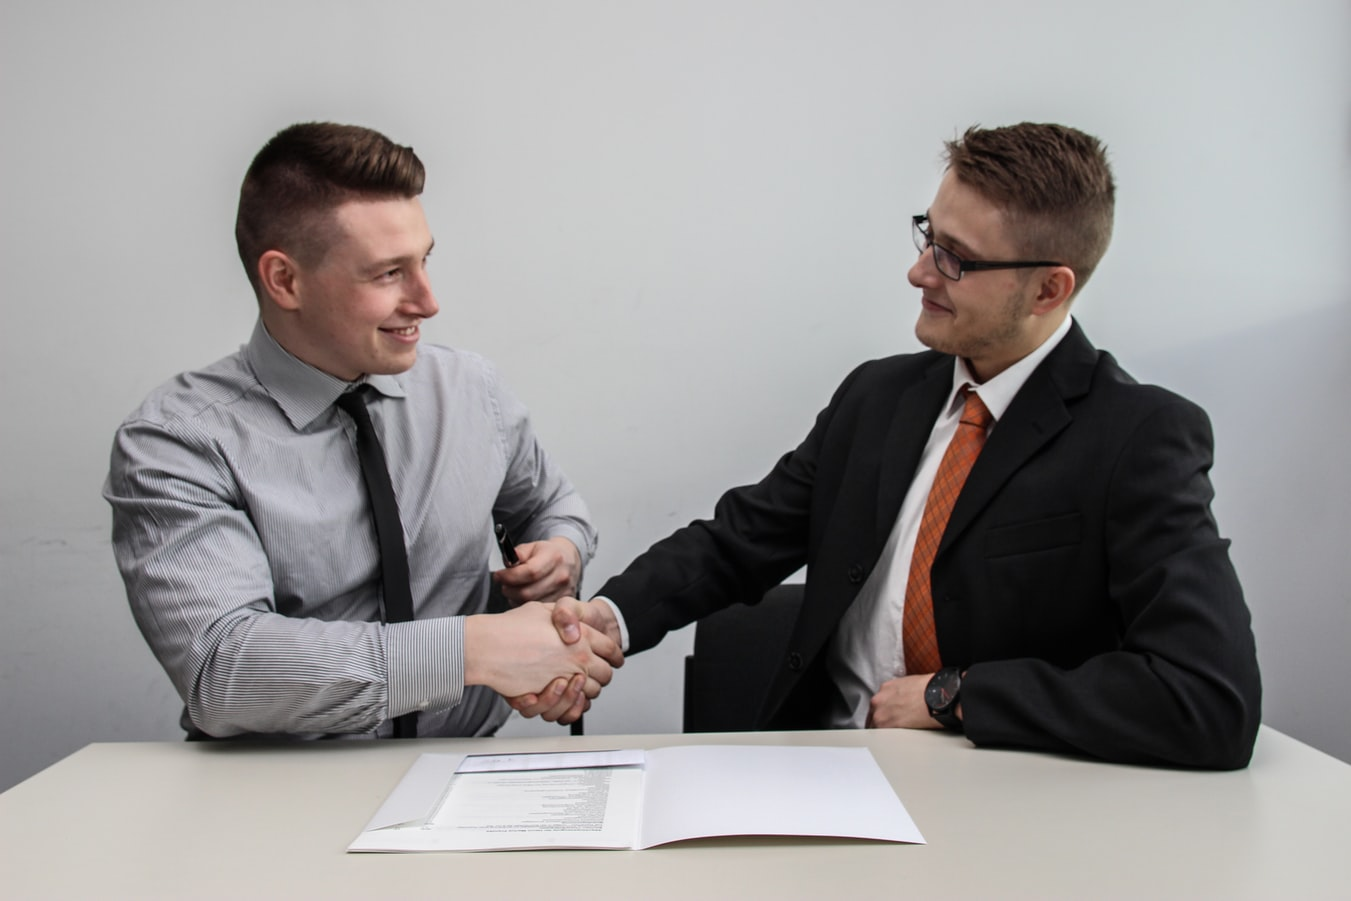 Selling to a professional home buyer has advantages over selling with an agent